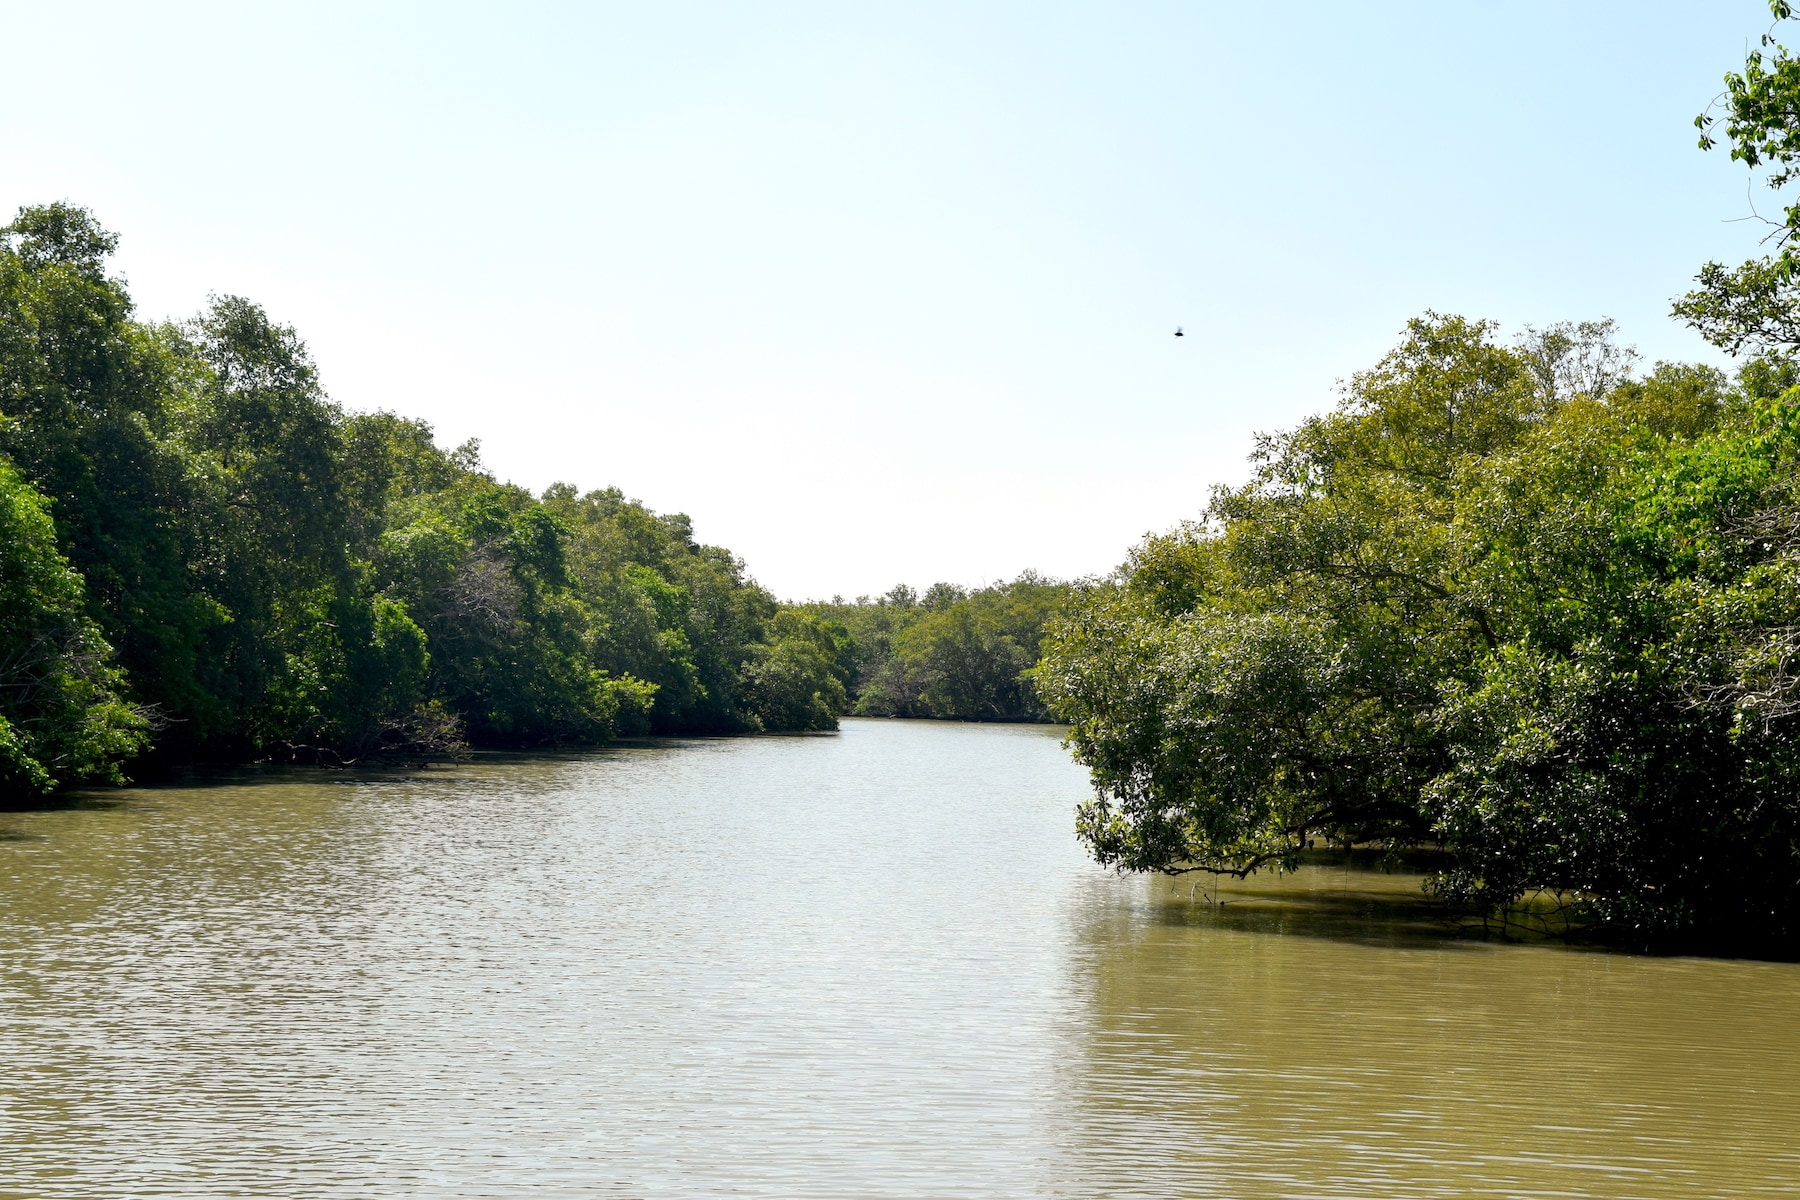 The Muthupet wetlands and lagoon are part of the Great Vedaranyam swamp, and are lined with mangrove forests. According to the Tamil Nadu Tourism website, this habitat hosts over eighty species of migratory birds during winter, including flamingos, pelicans, ducks, and terns. Photo: Shoma Abhyankar